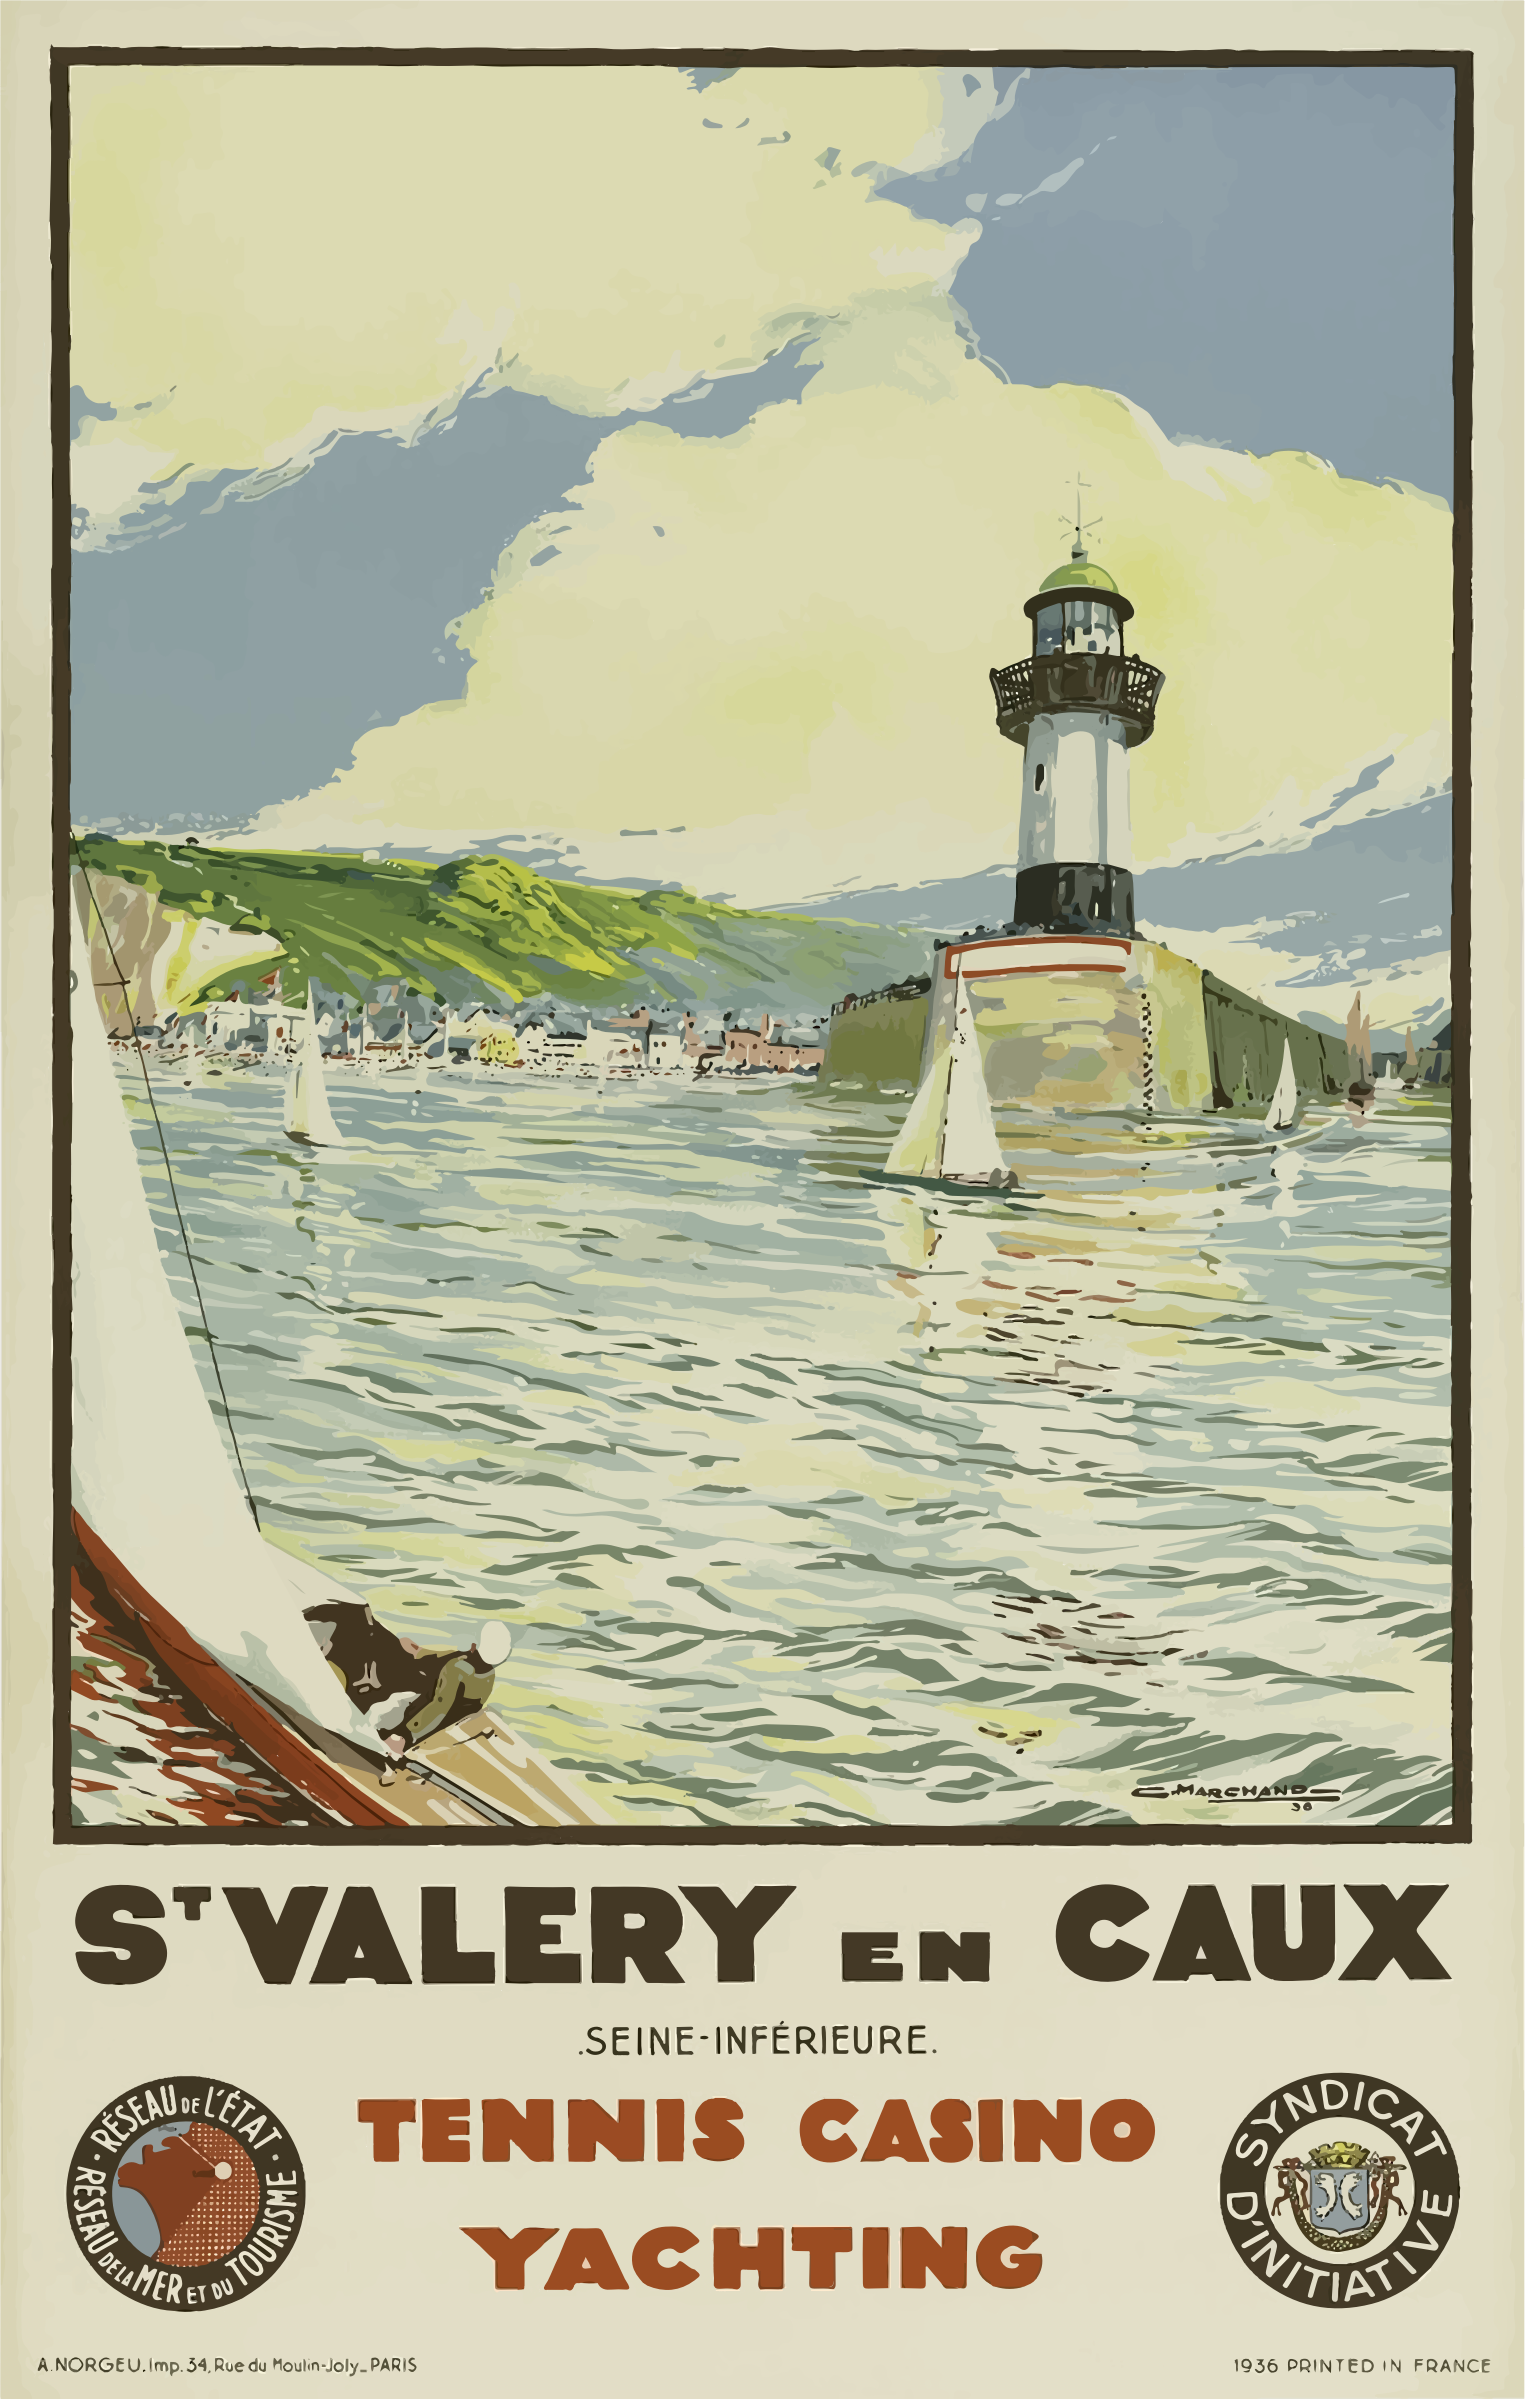 Vintage Travel Poster St Valery En Caux France by GDJ